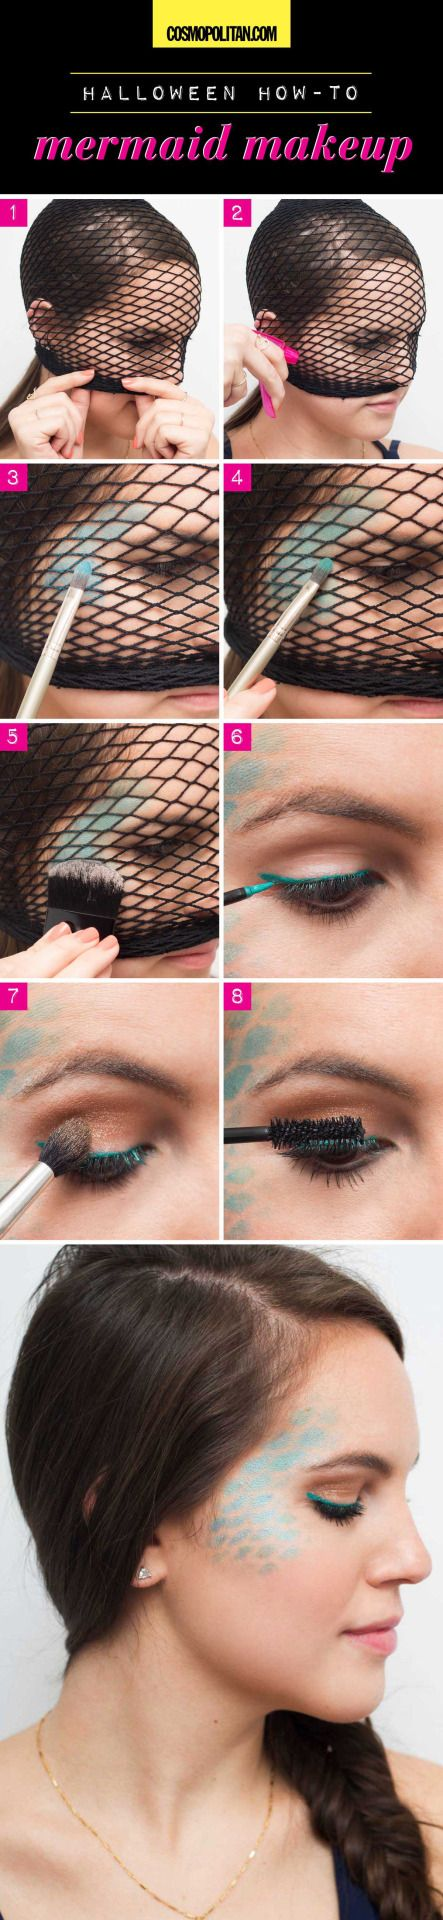 "cosmopolitanmagazine: "" ~*Mermaid Makeup*~ """